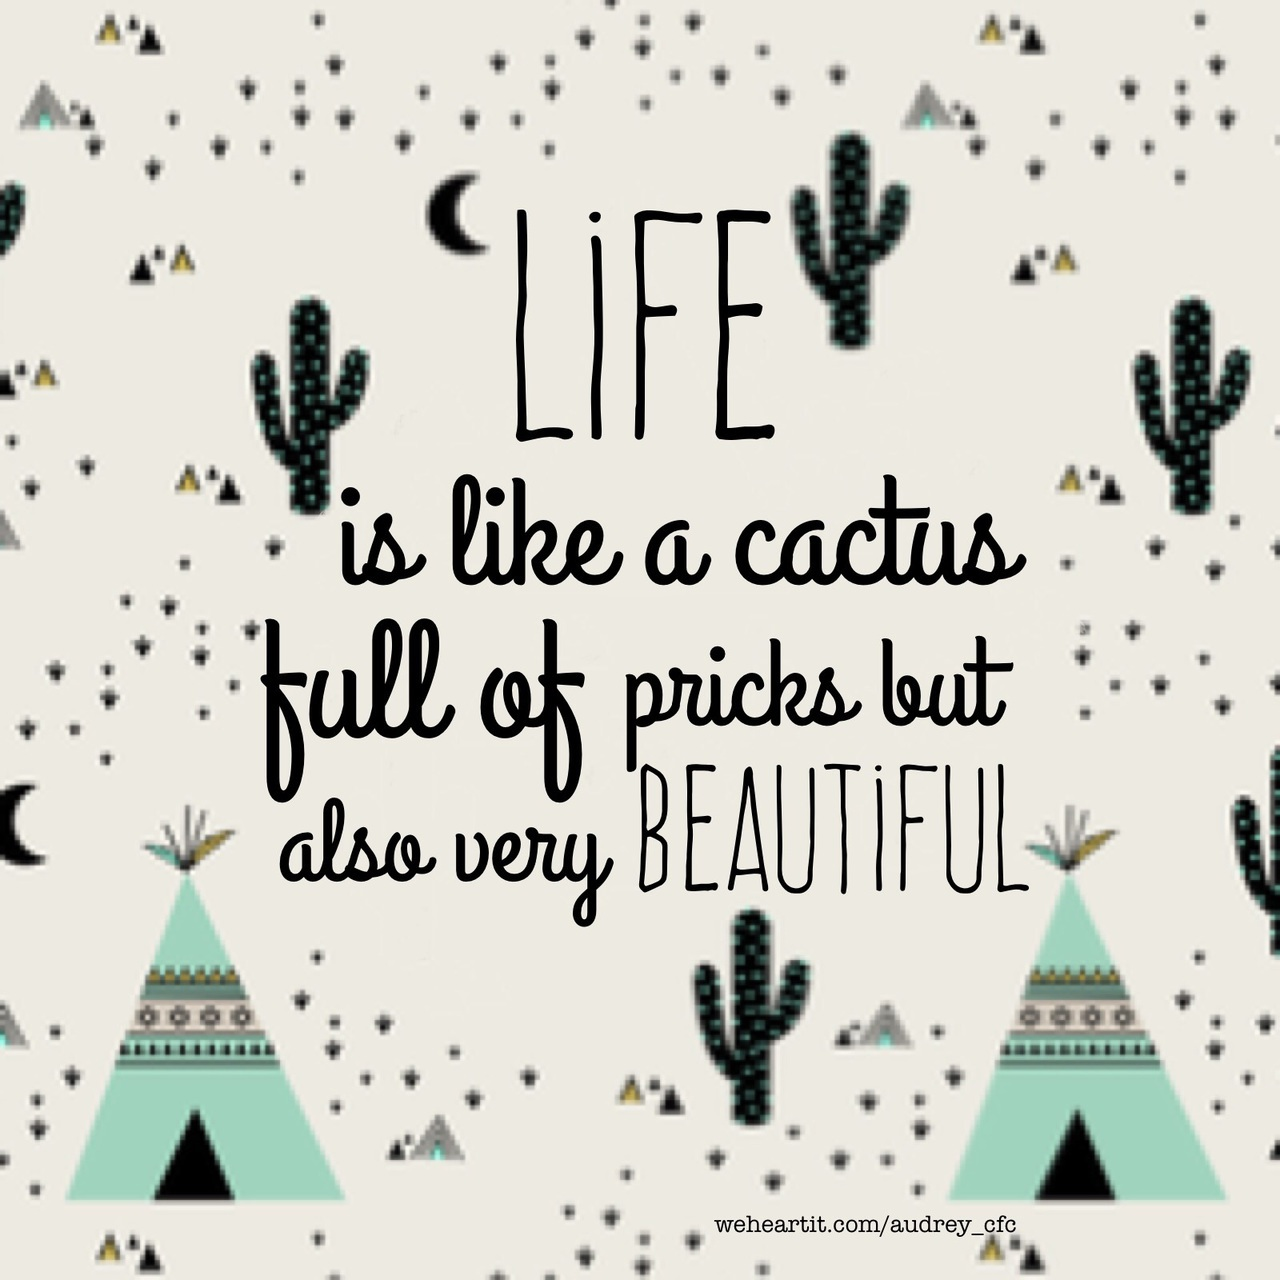 beautiful, indian, inspirational, life, live, love, moon, motivational, positive, quote, teepee, tribal, audrey_cfc